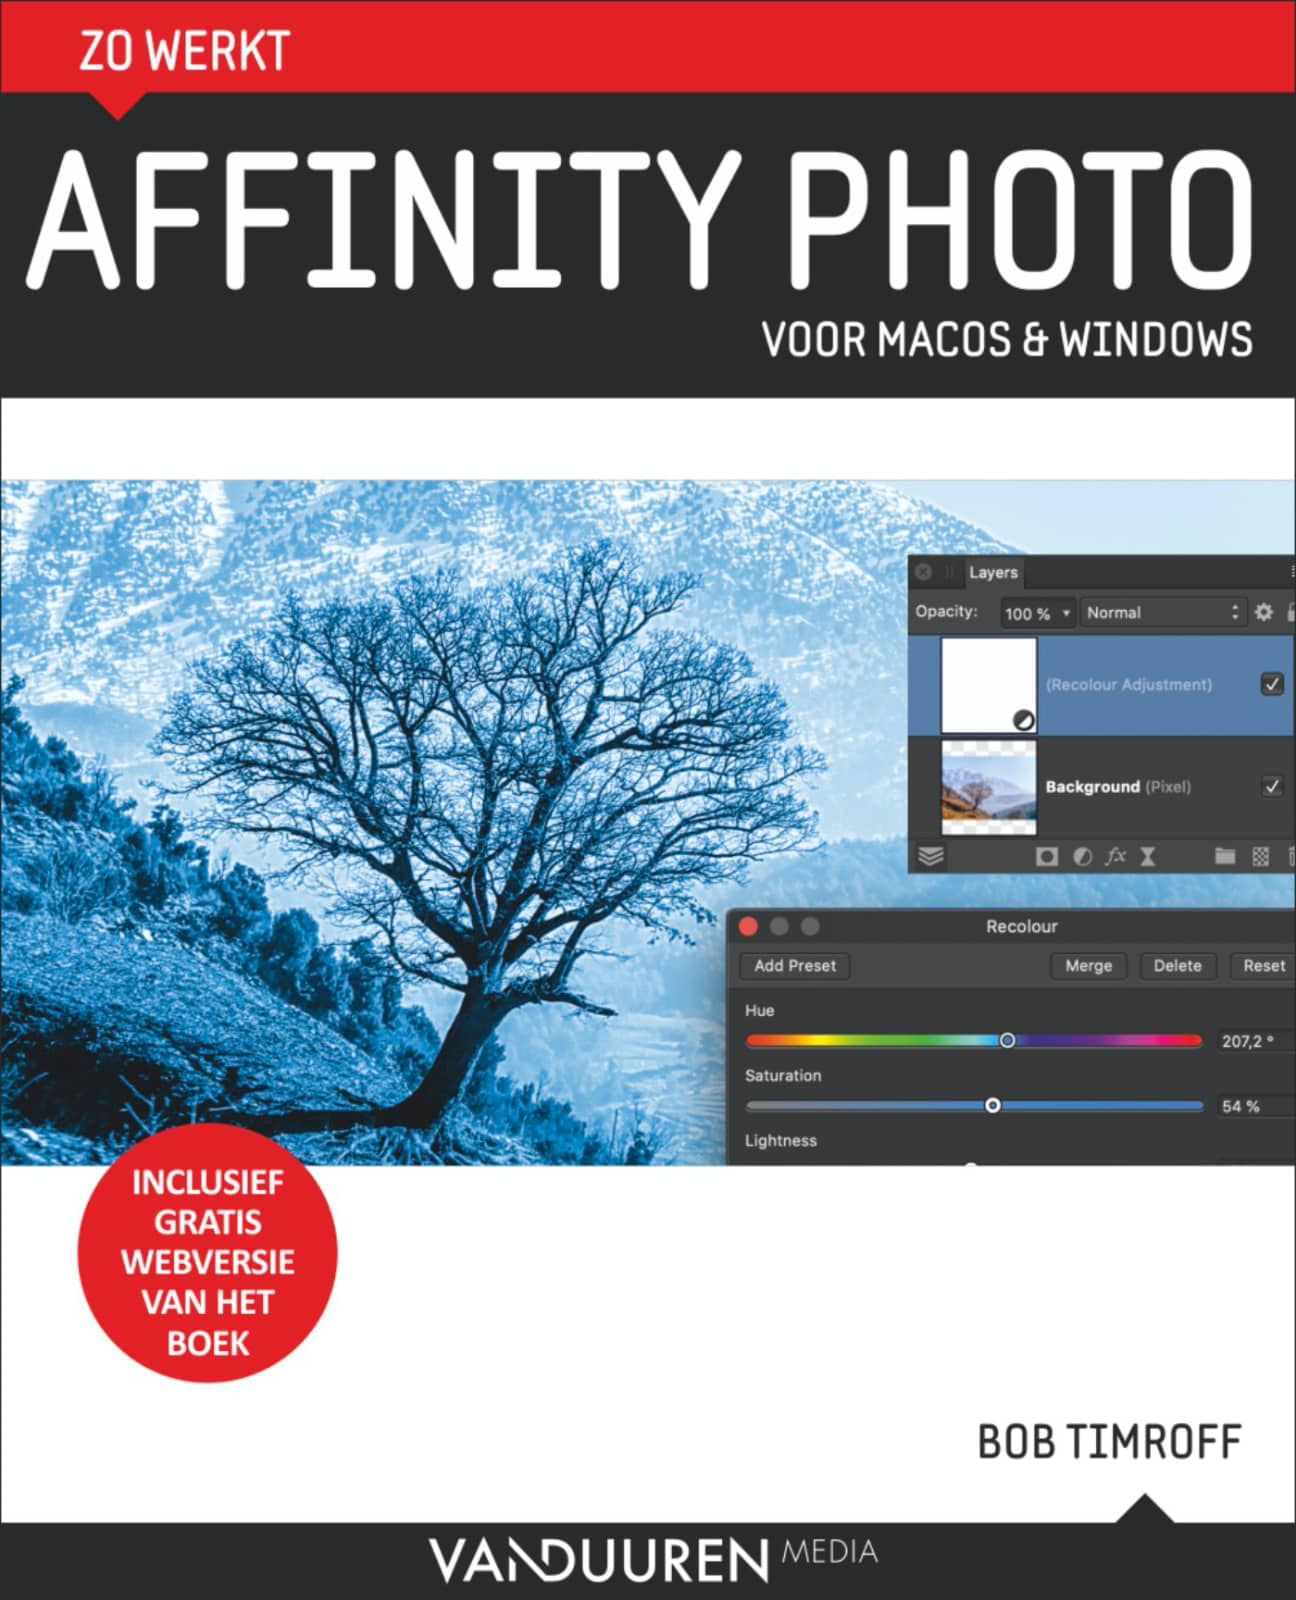 Zo werkt Affinity Photo Voor macOS & Windows - Bob Timroff, isbn 9789463561341